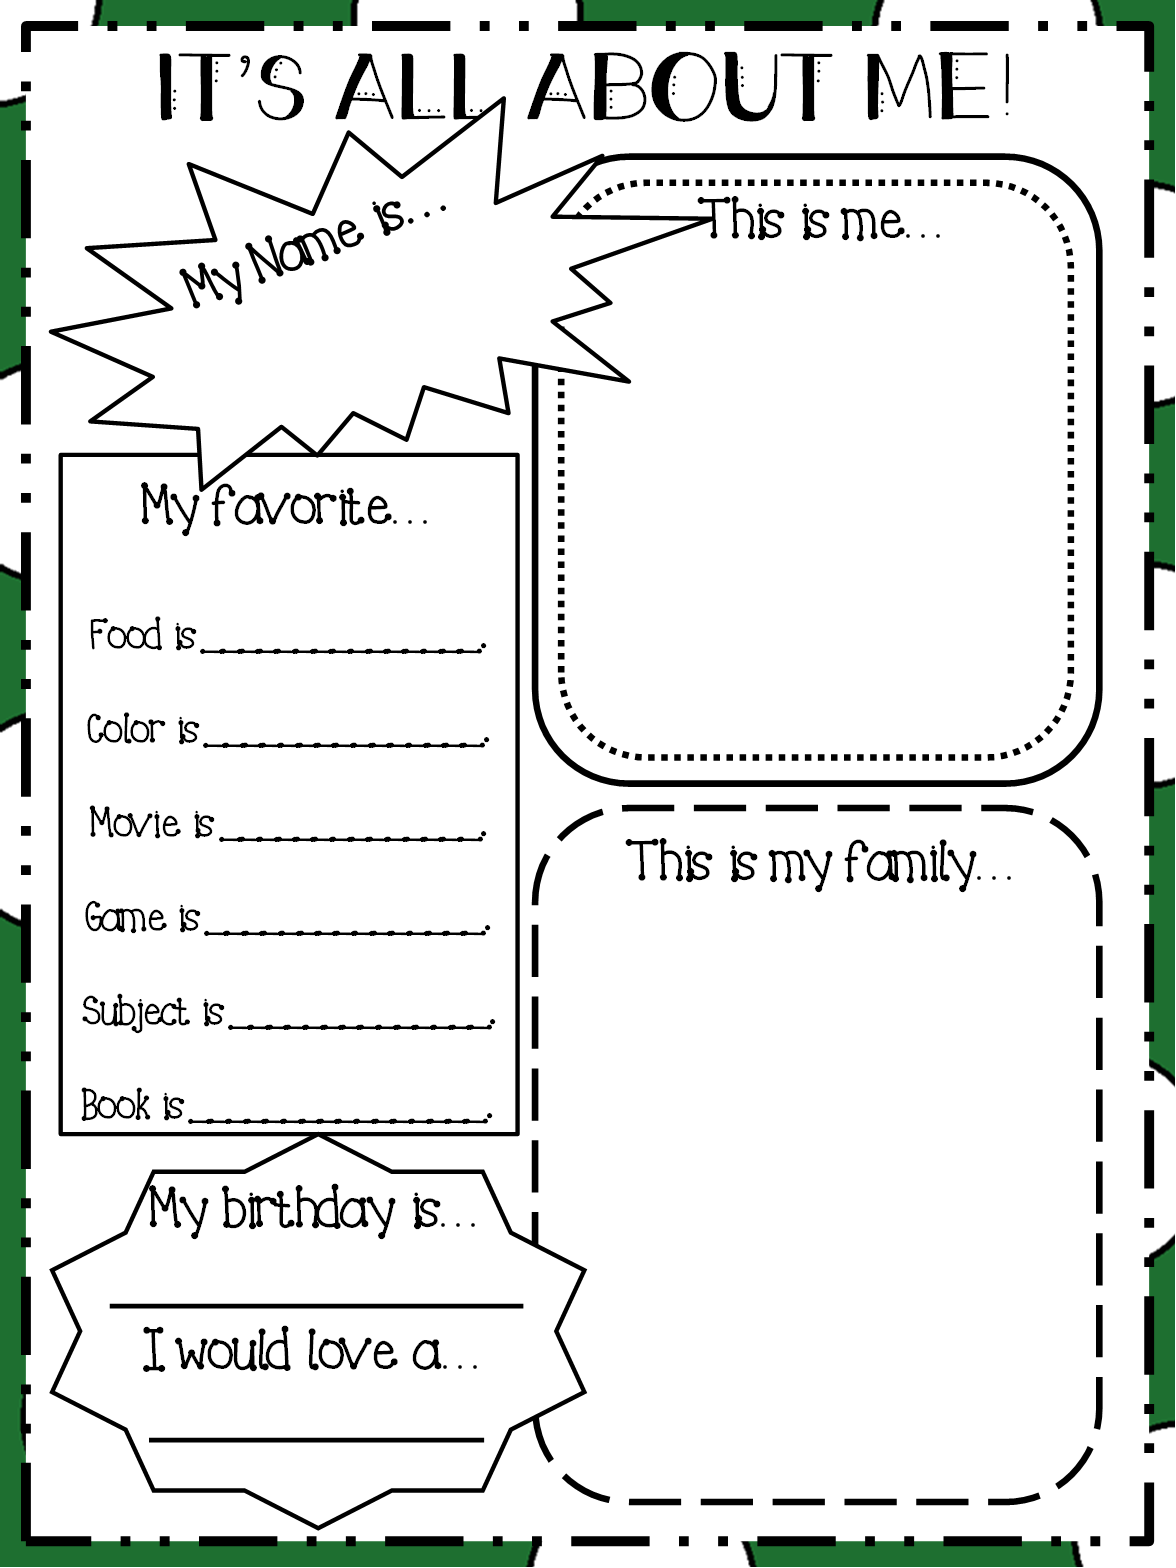 Teaching resource queen august 2014 for About me template for students